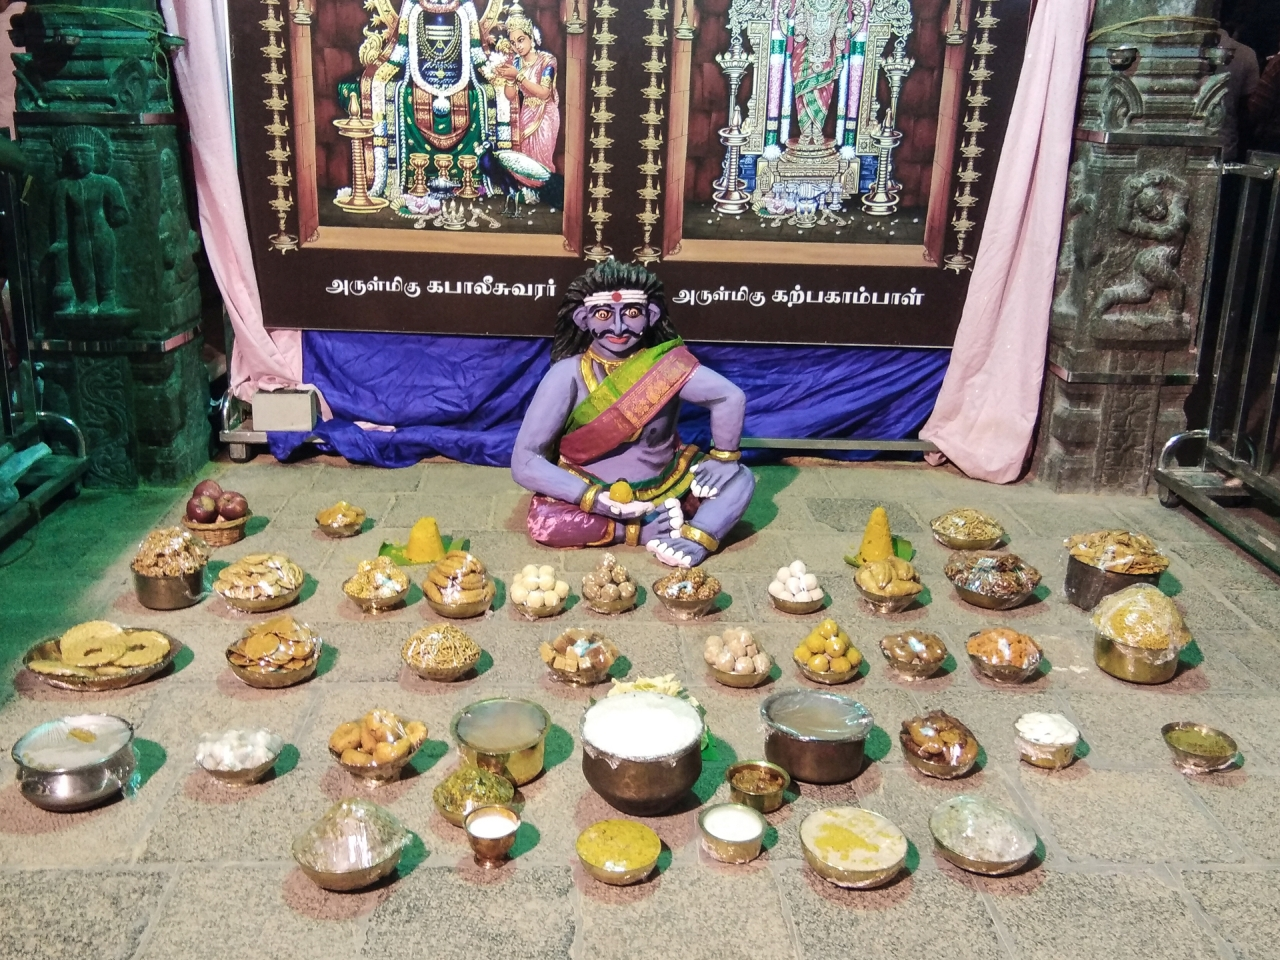 Annamidal for Gundotharan at Kapaleeswarar temple